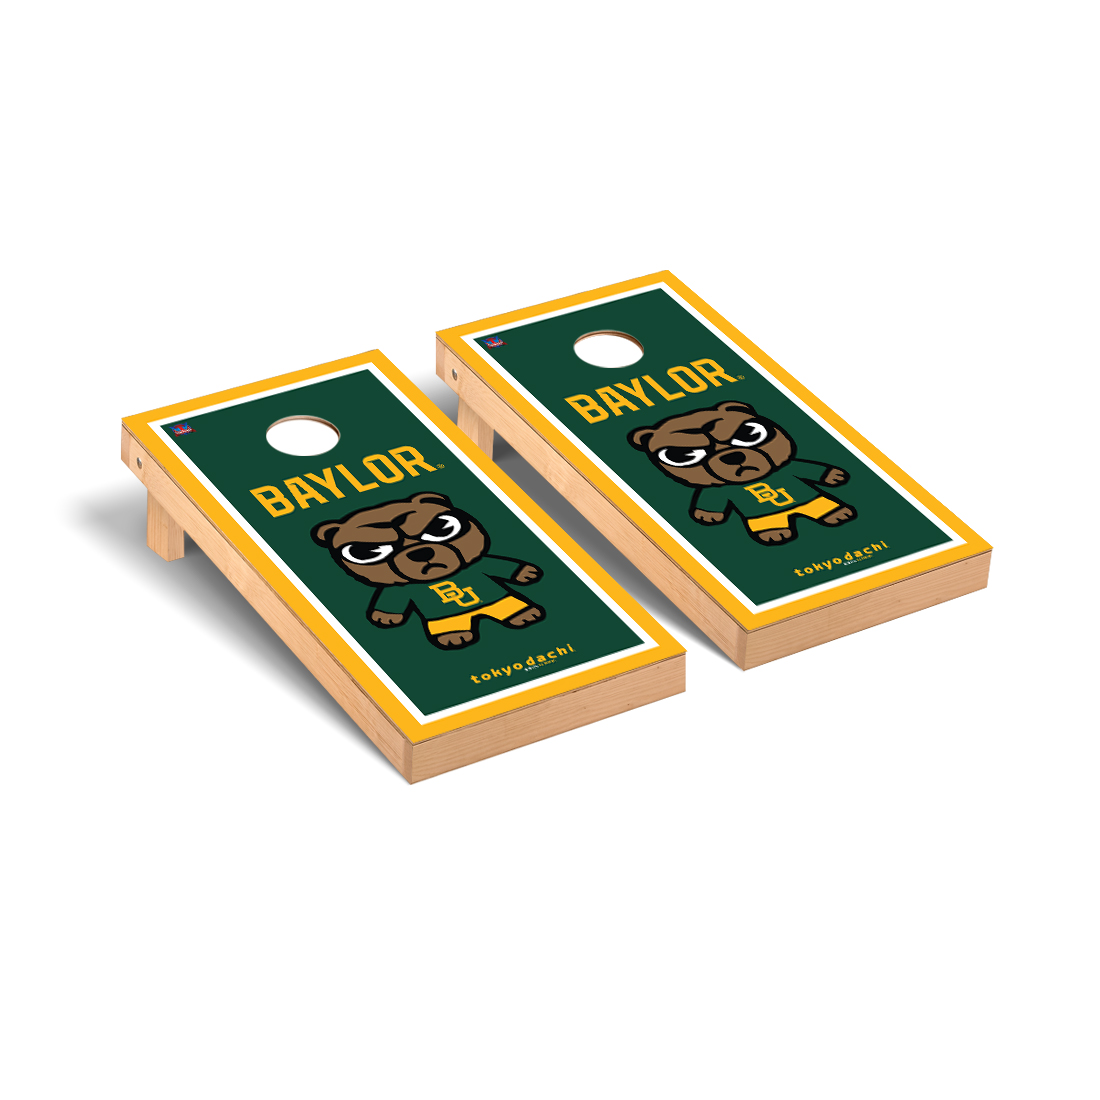 Baylor University Bears Tokyodachi Design Cornhole Game Set